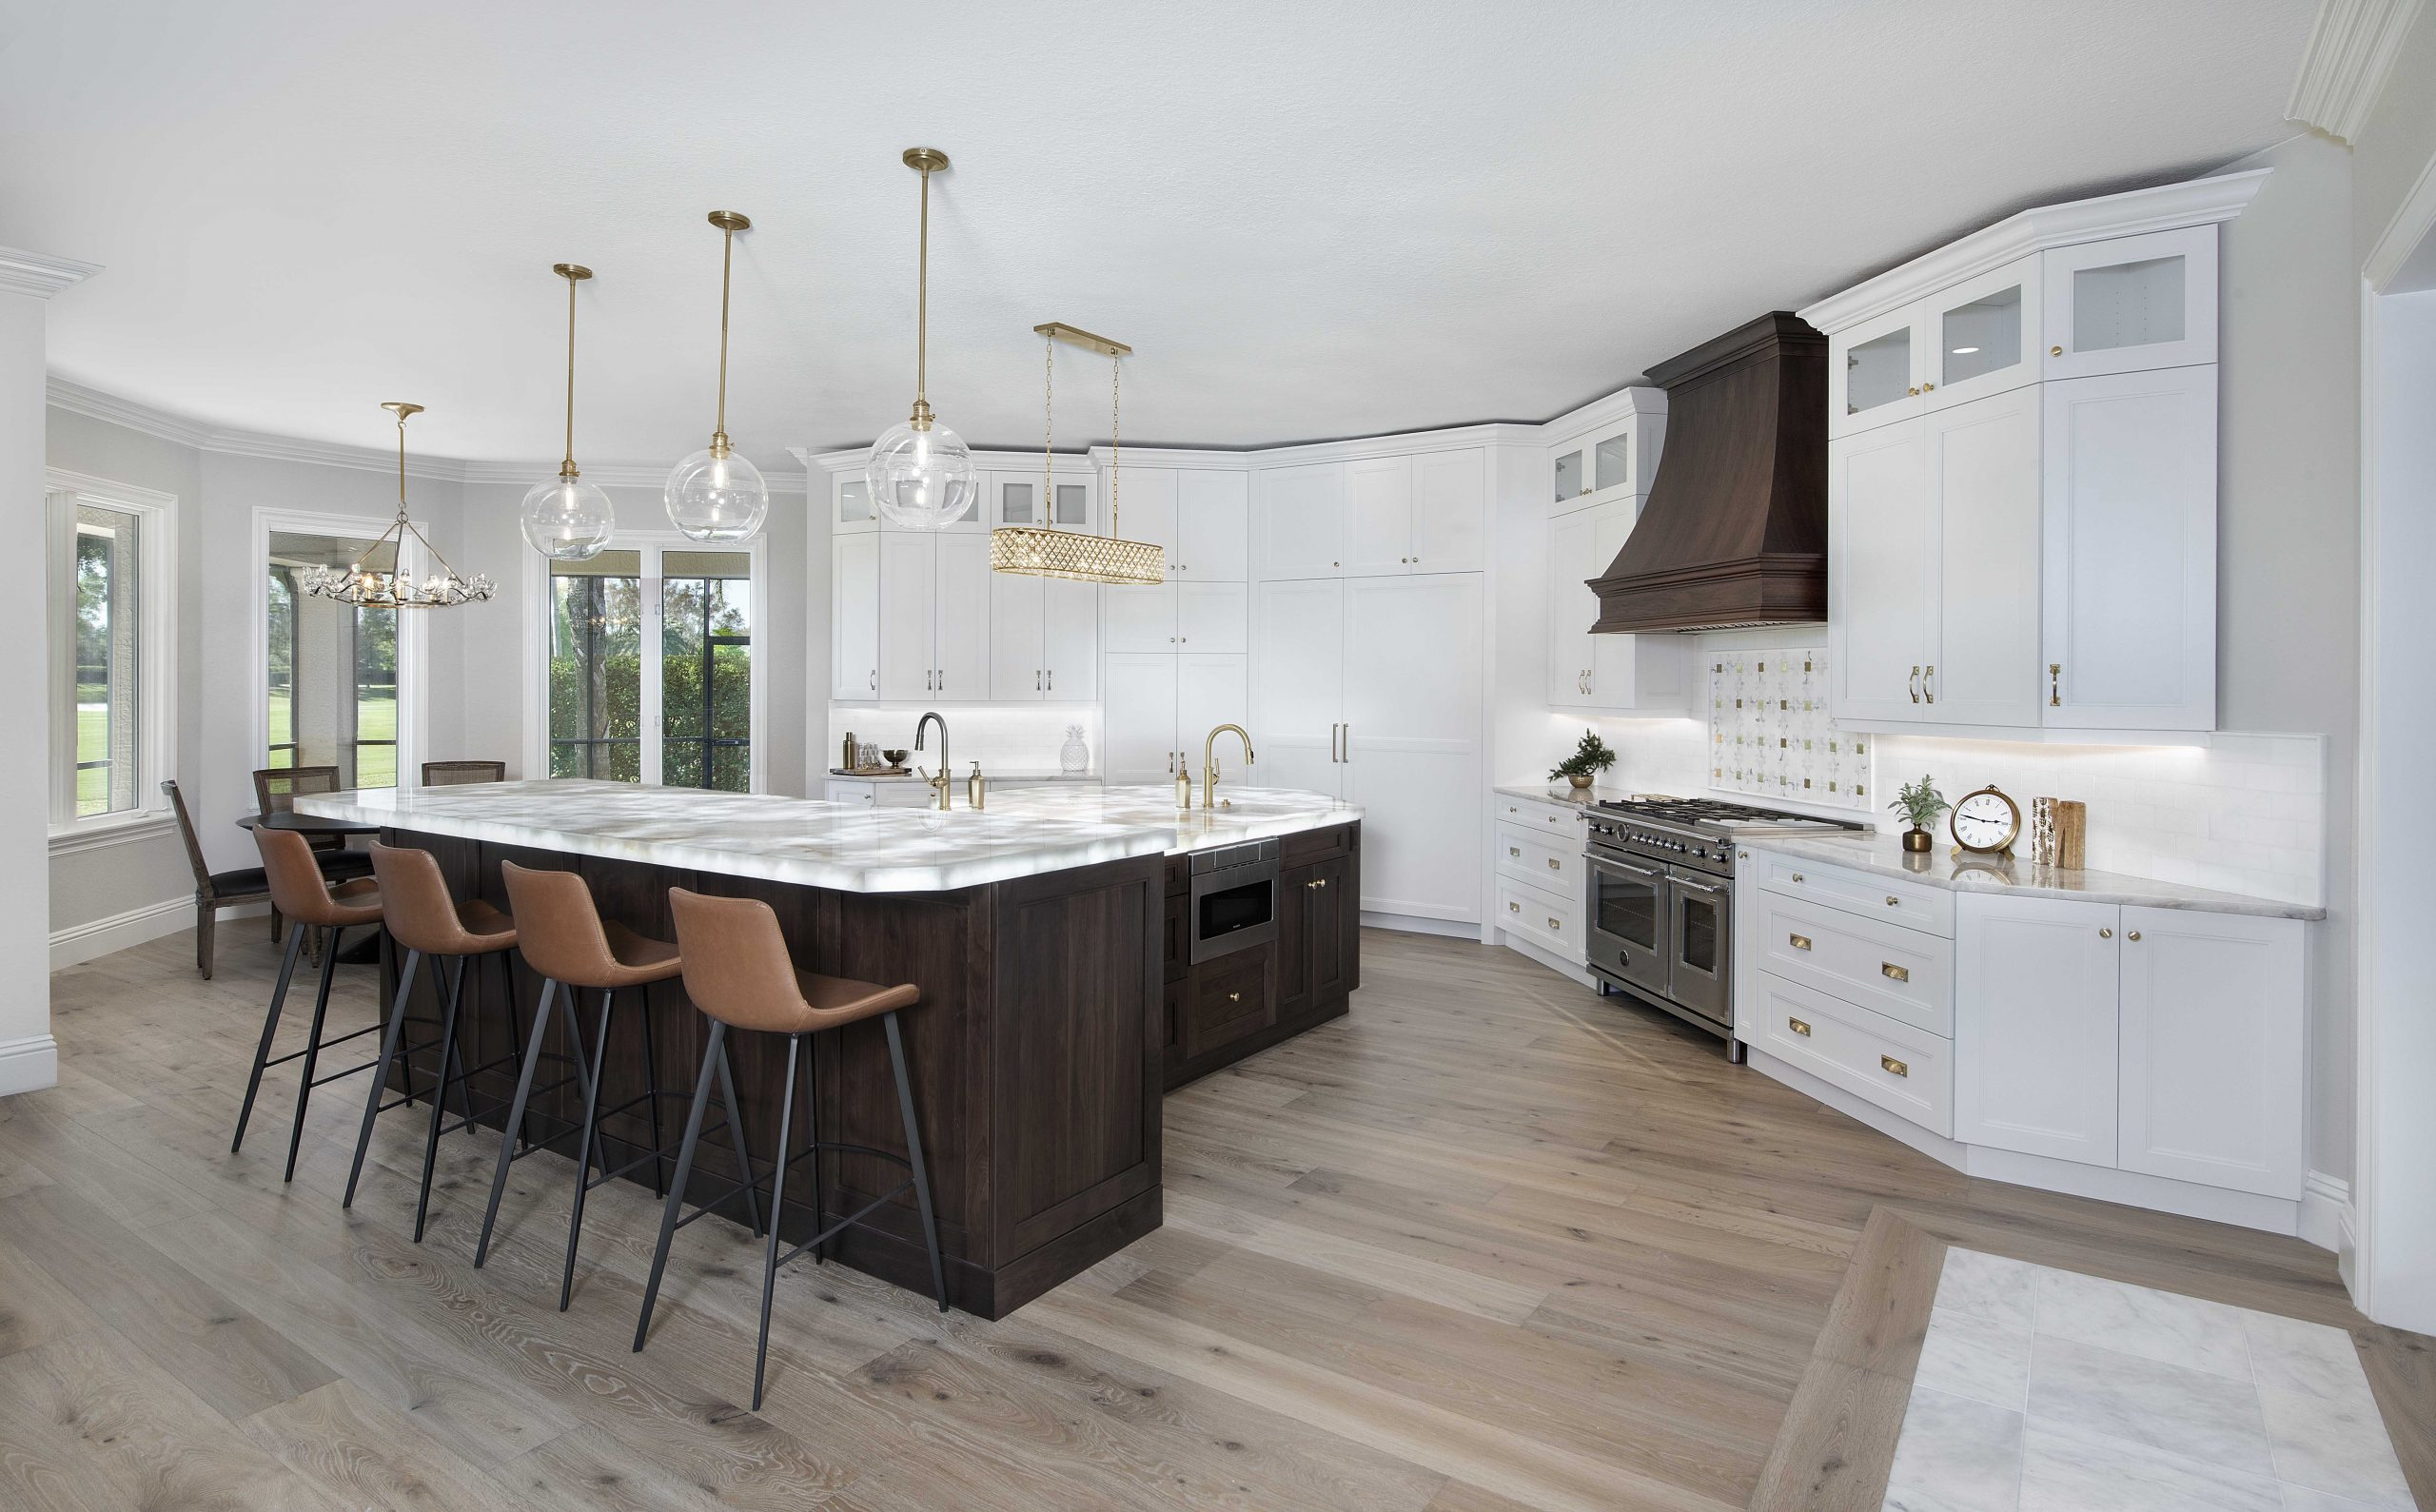 A Before & After Renovation Story in Quail West